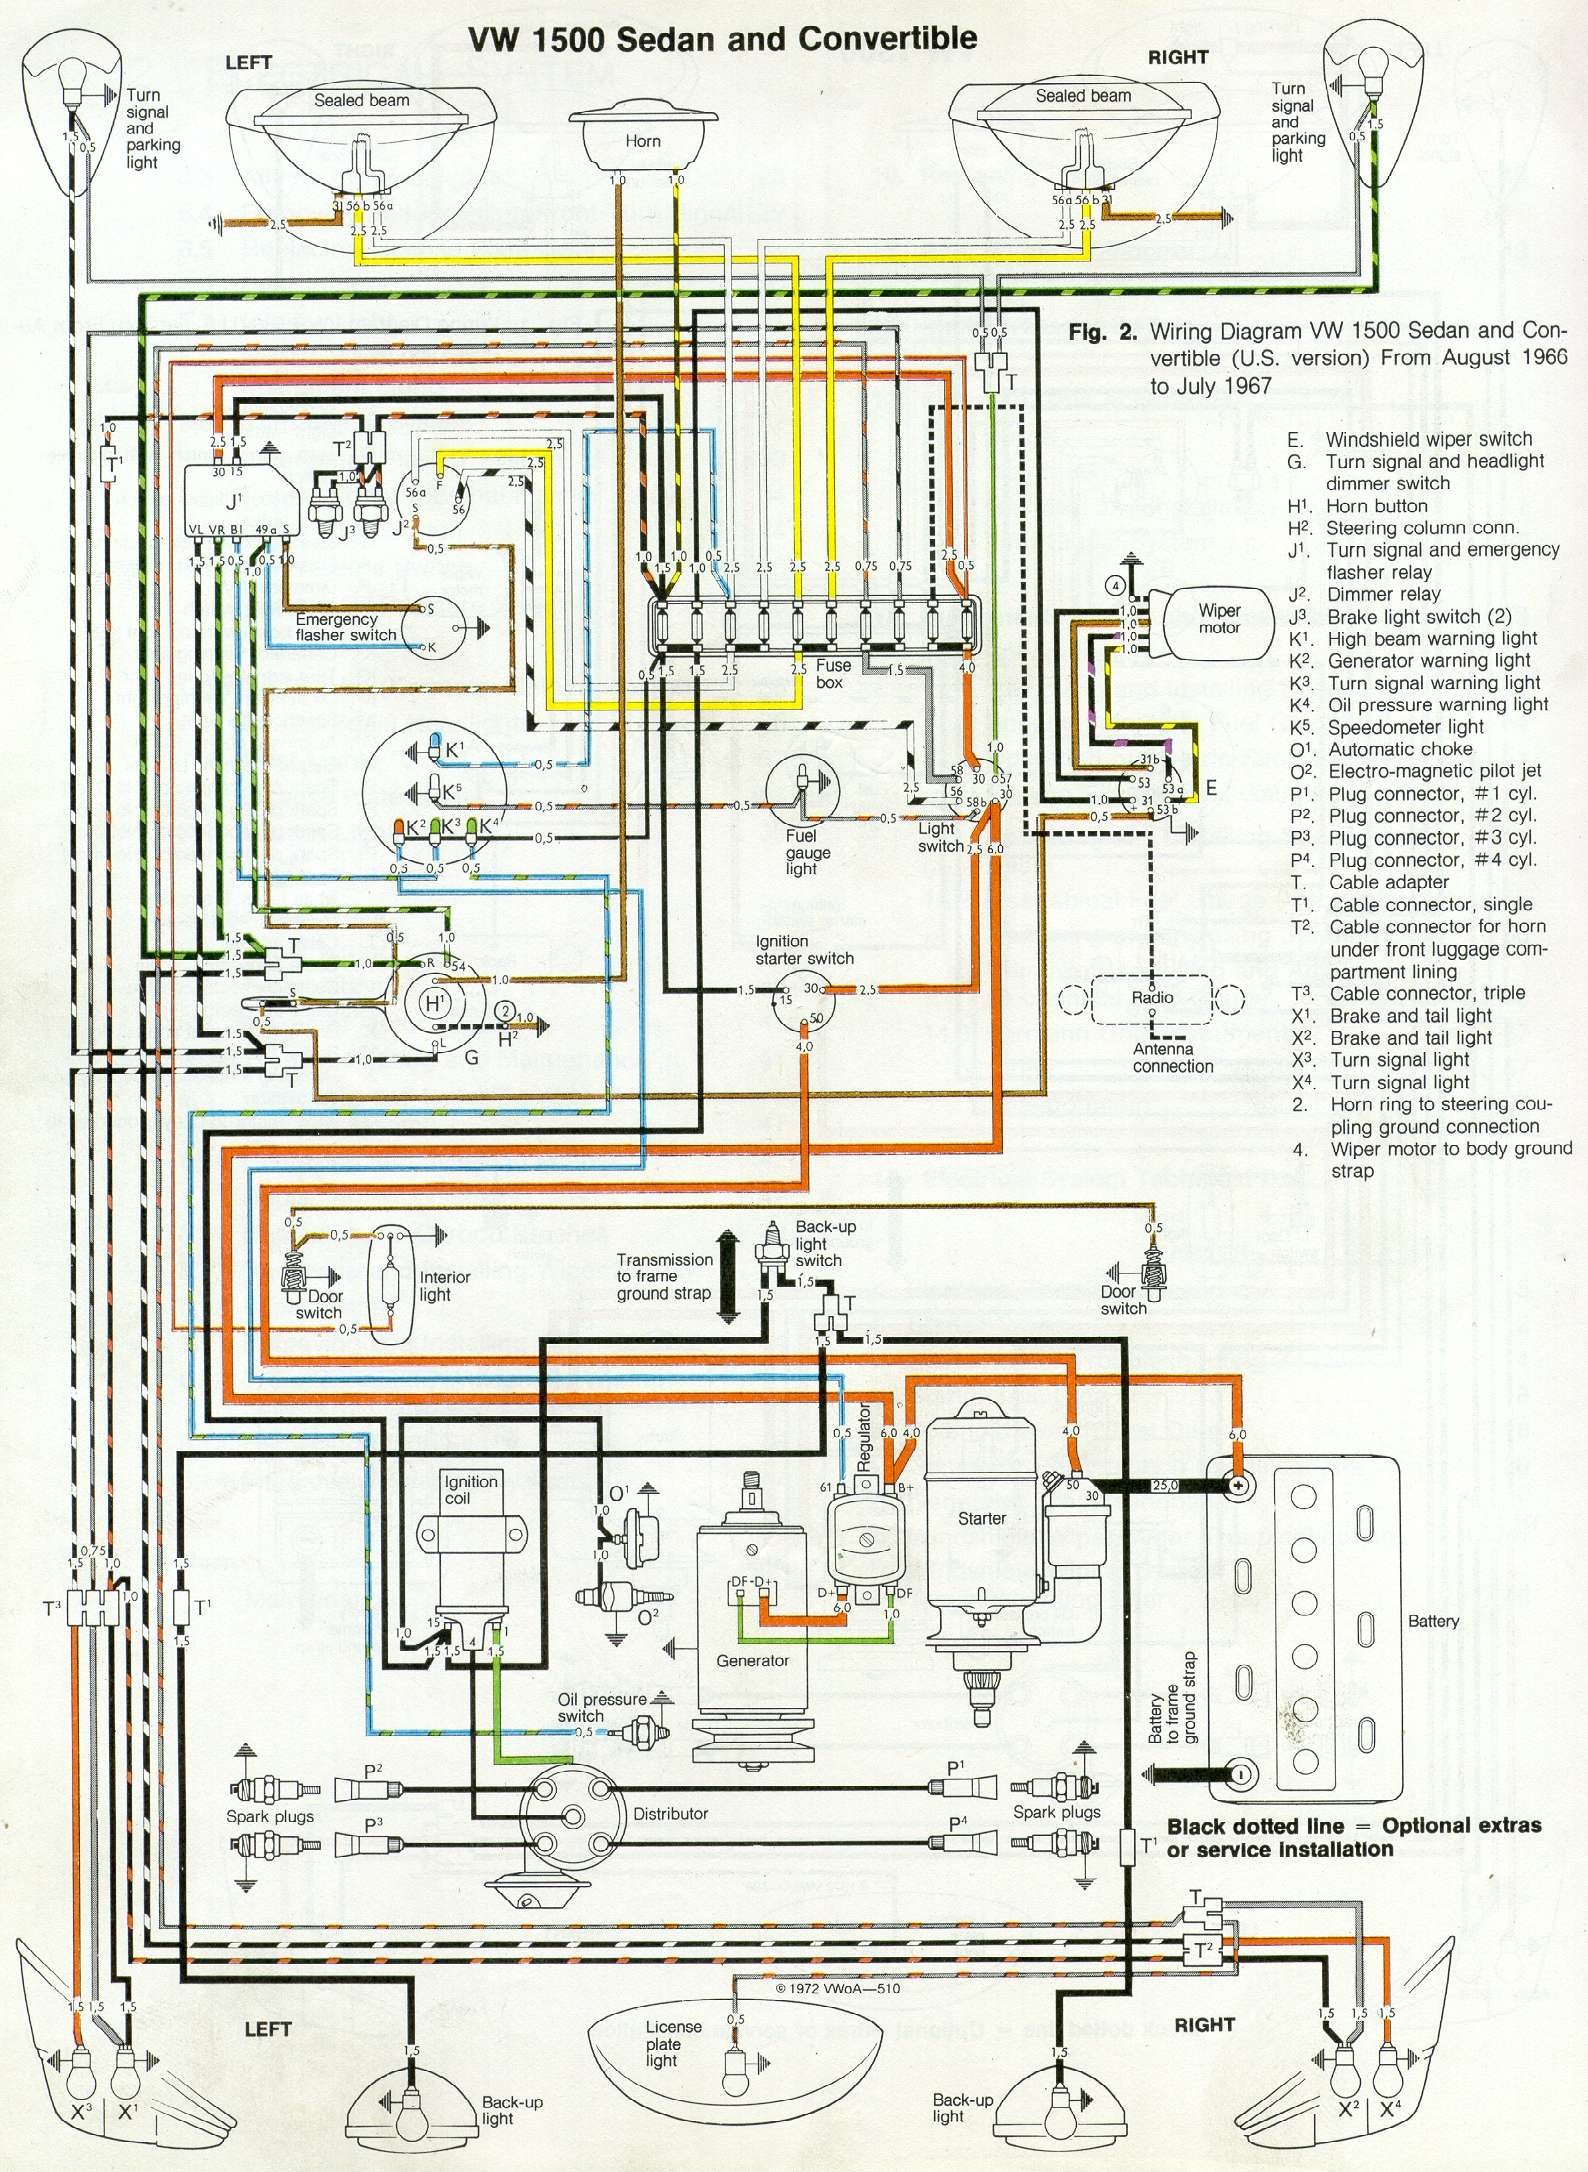 VW bug_1967 other diagrams wiring diagram for 1973 vw thing at alyssarenee.co